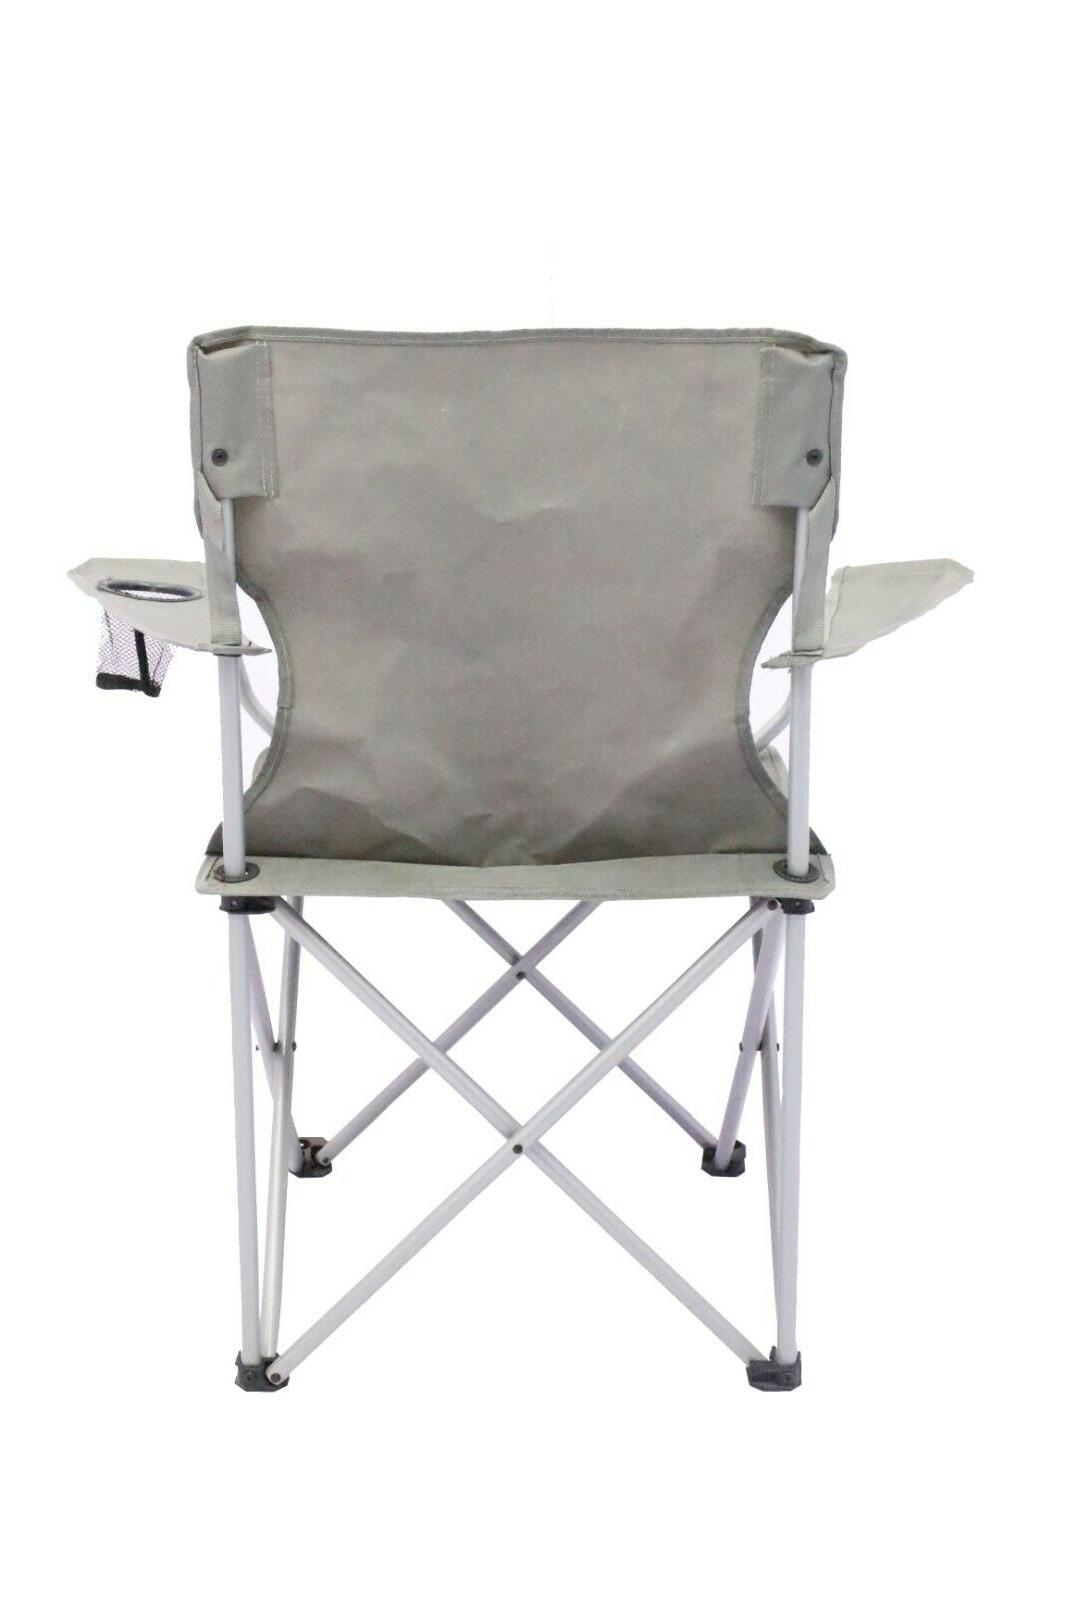 2 Pack Quad Camping Chair One Seat NEW